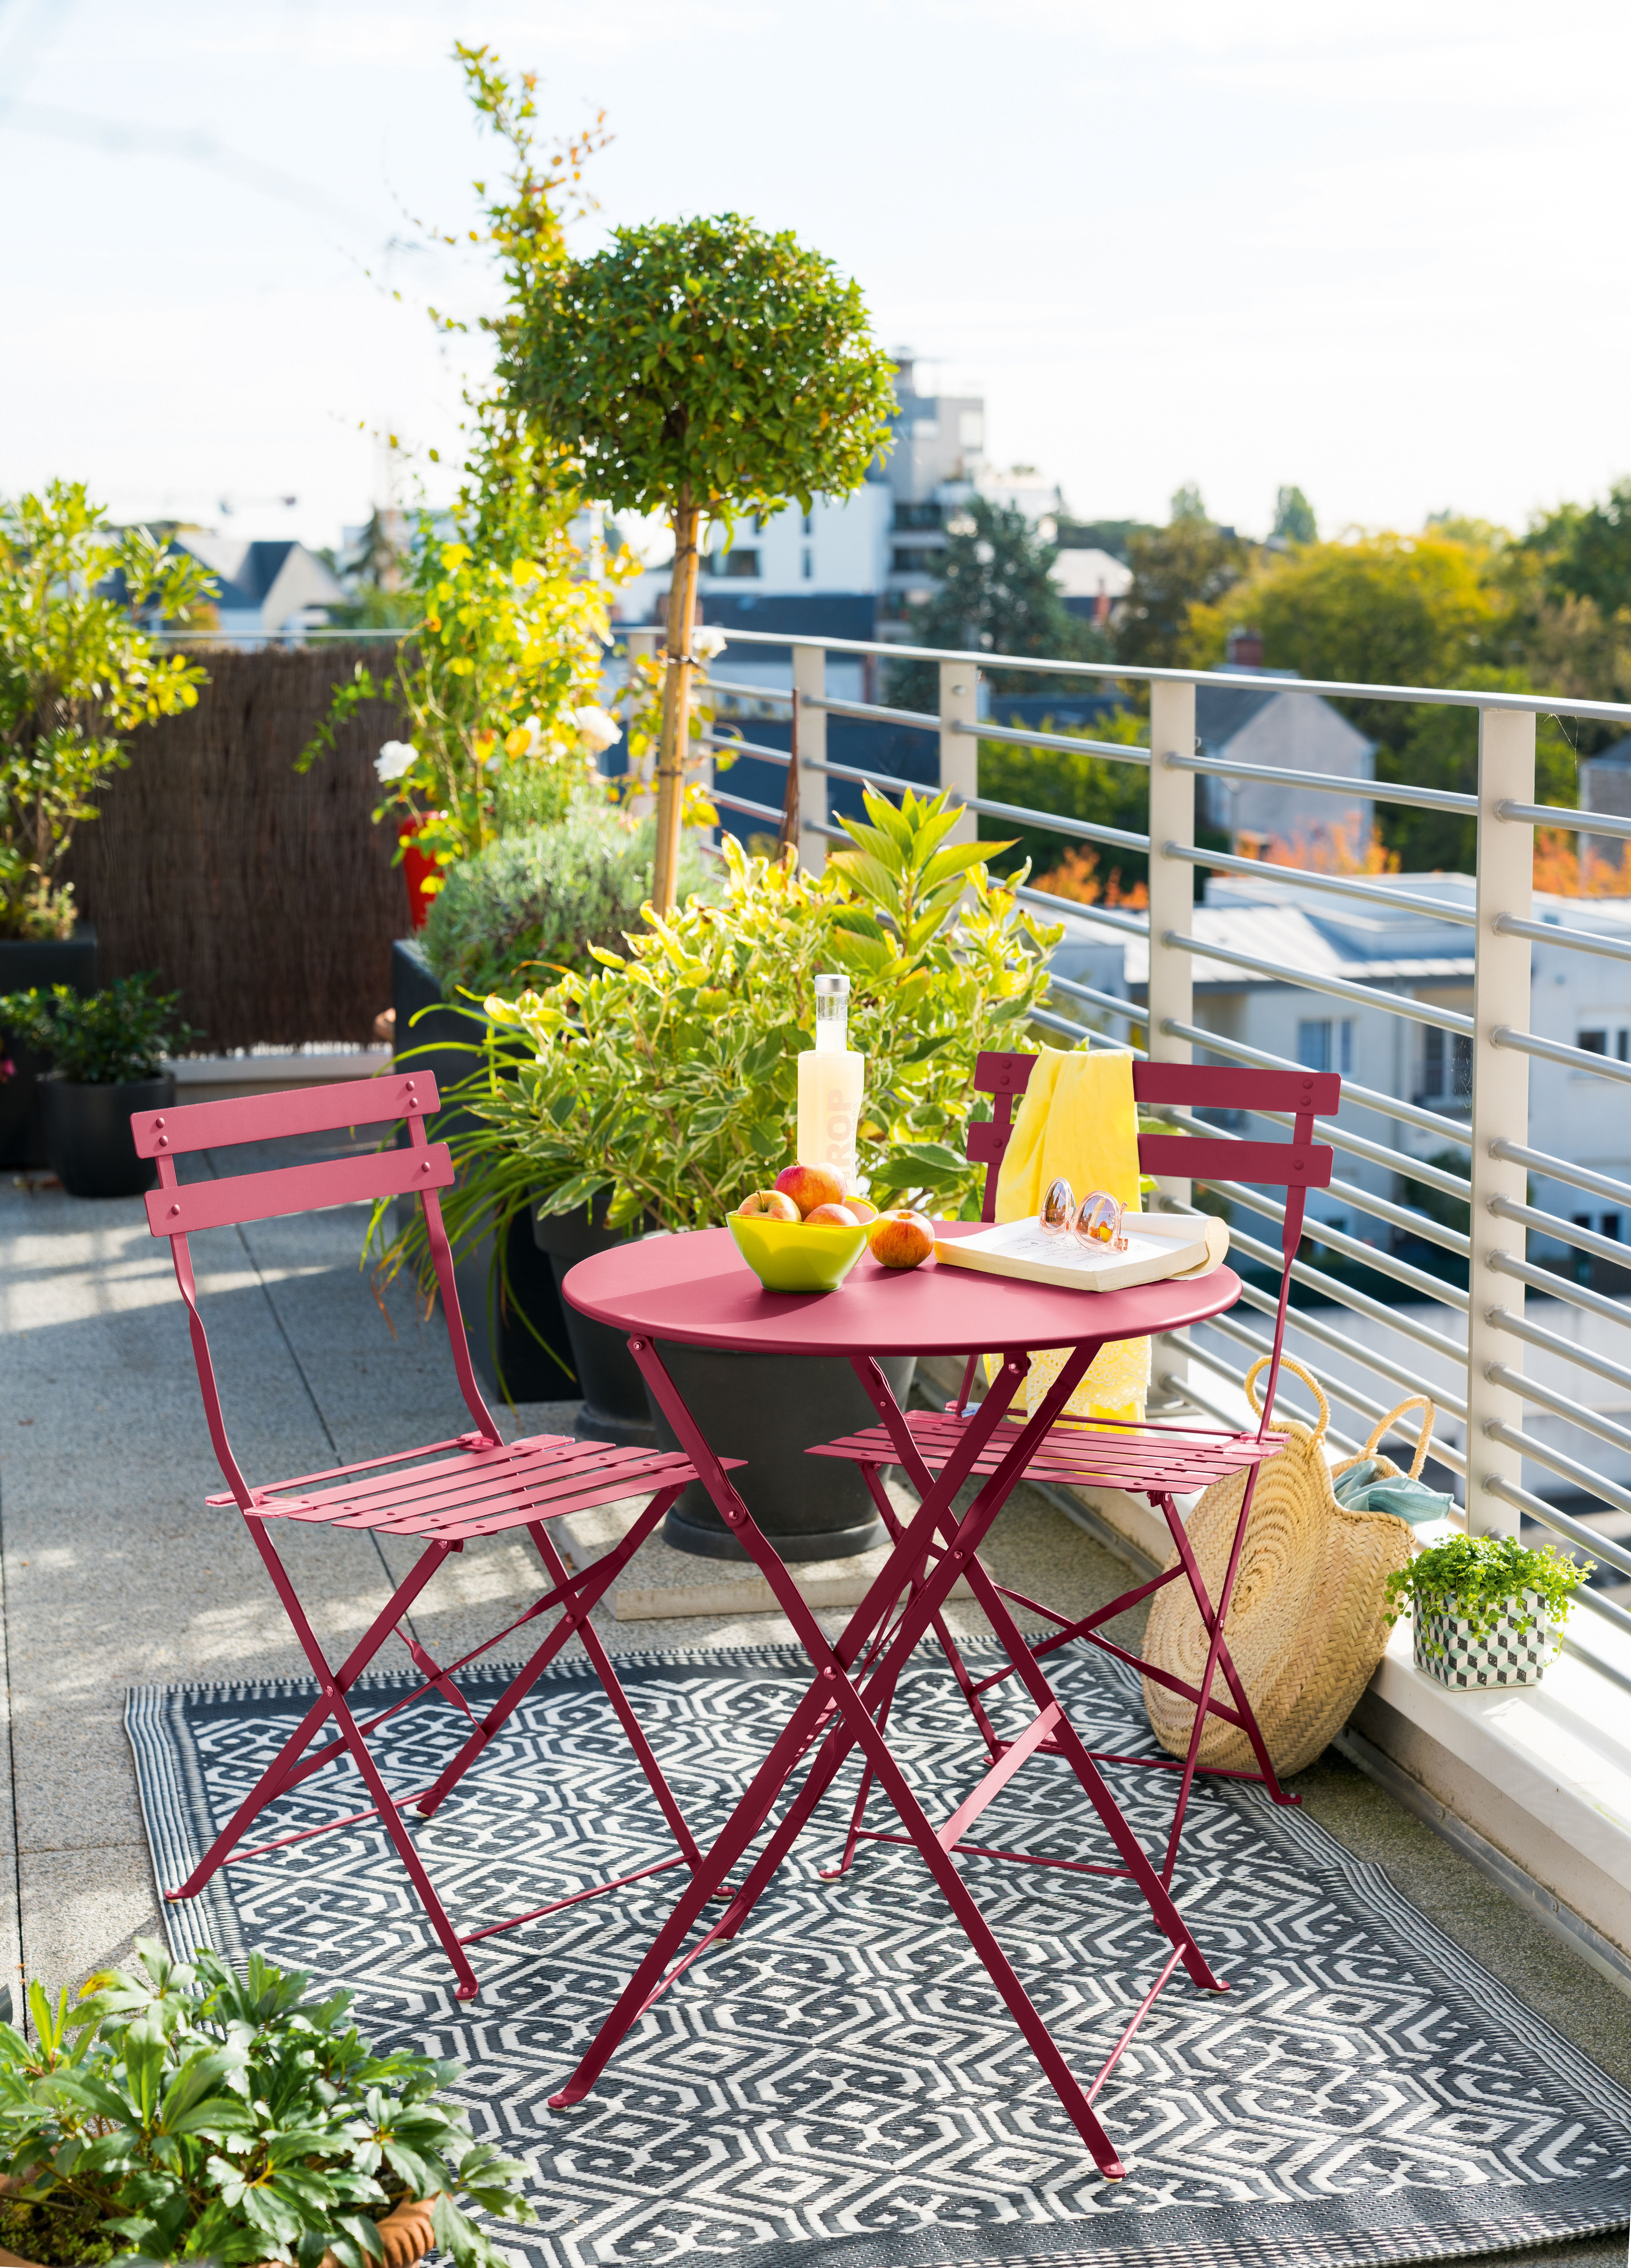 La Table Pliable Ronde Centrakor En 2020 Table De Jardin Pliante Table De Jardin Petite Table De Jardin